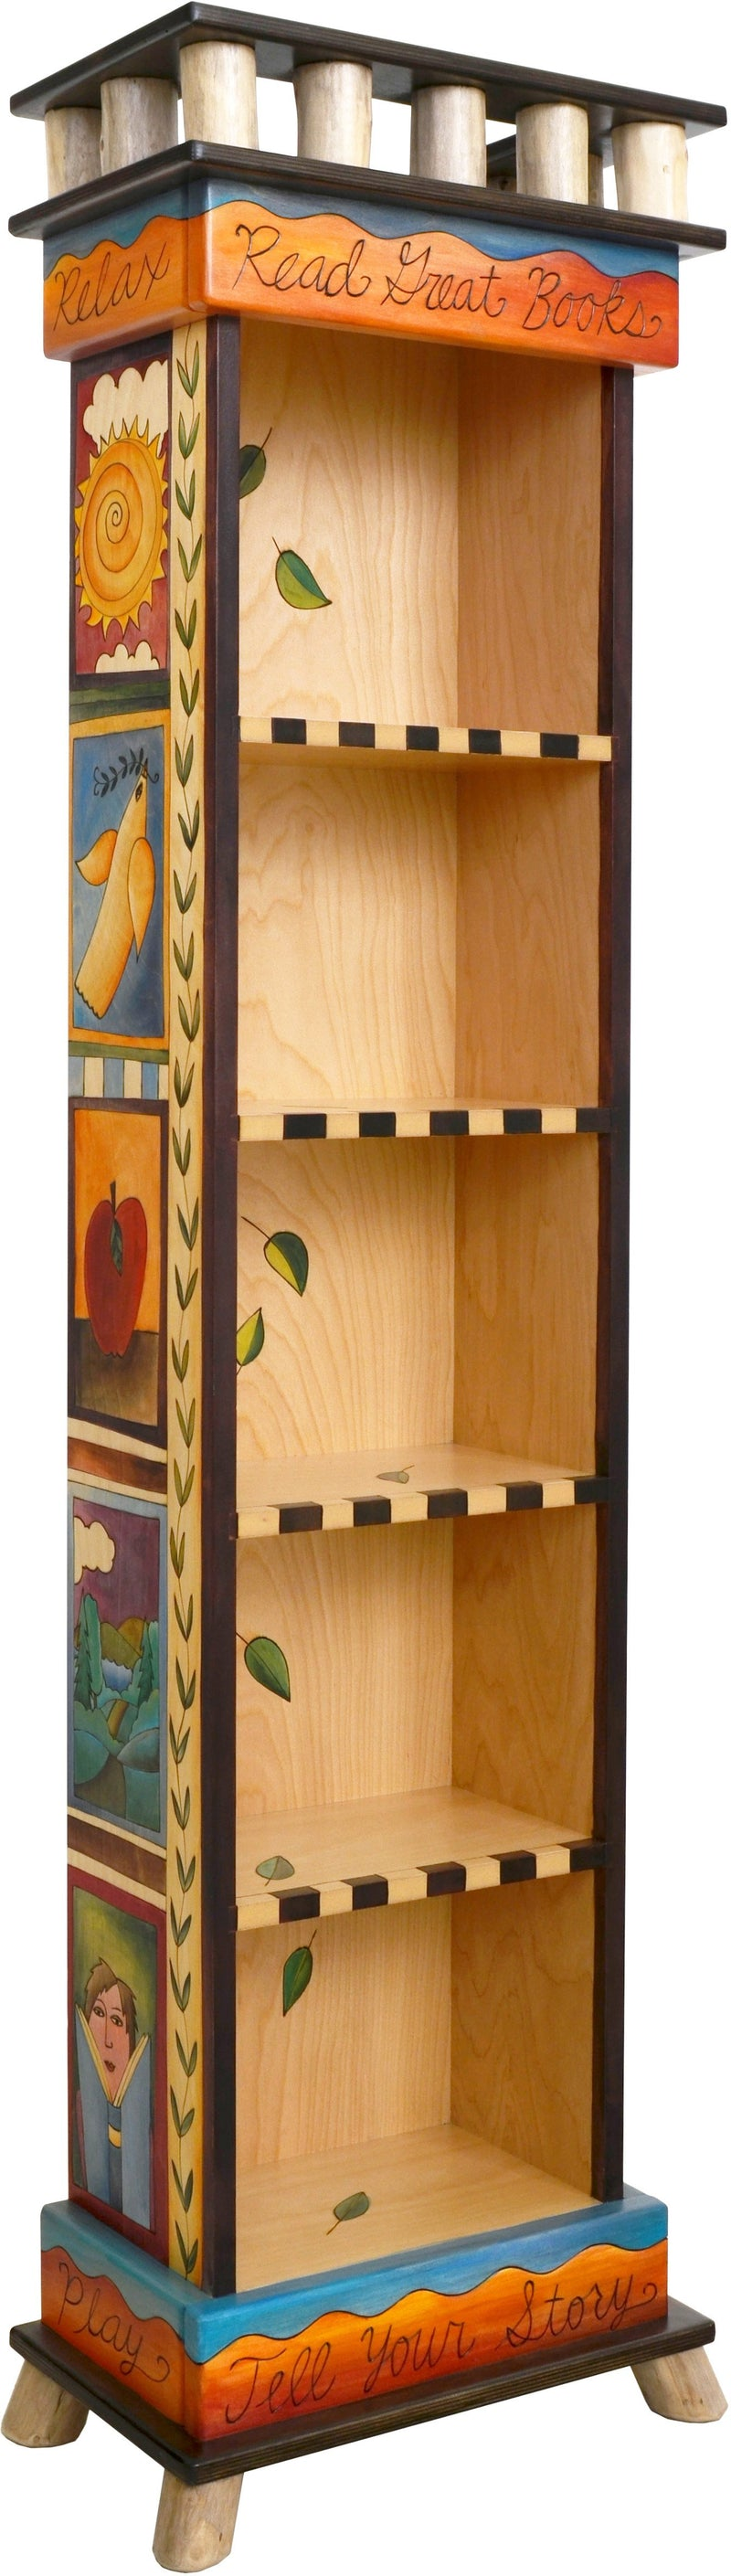 Tall Bookcase –  Bright and contemporary folk art bookcase with colorful block icon motif